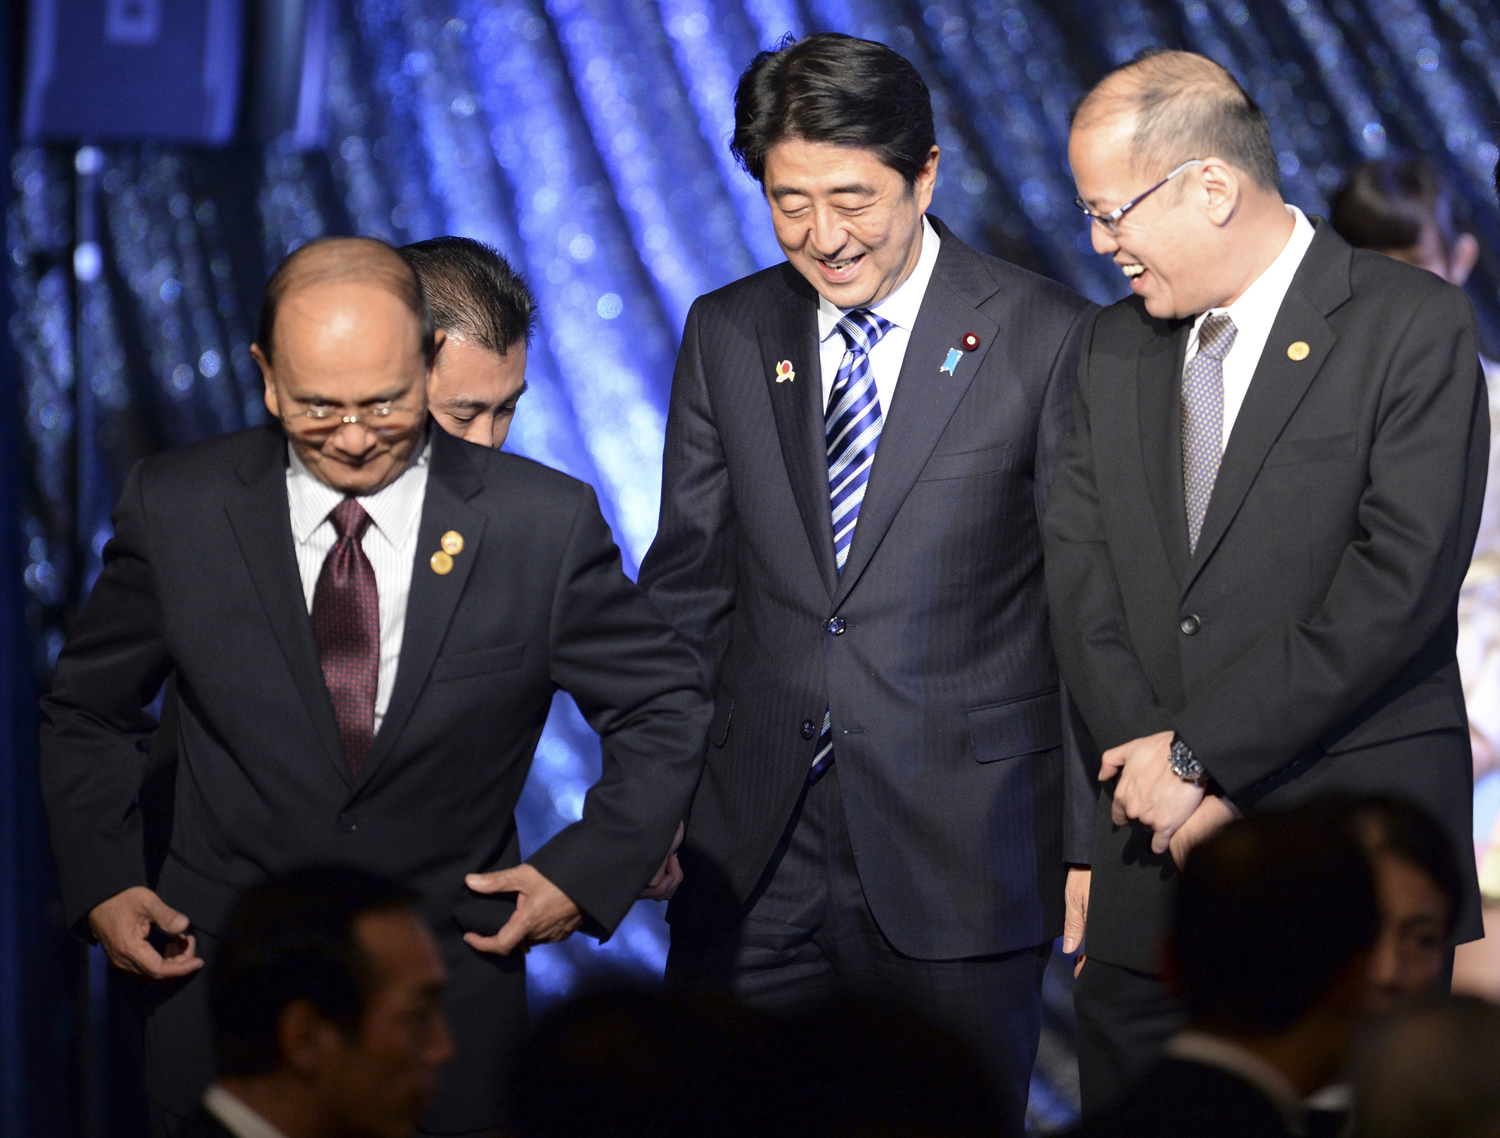 From left, Burma's President Thein Sein, Japan's Prime Minister Shinzo Abe and Philippine President Benigno Aquino III leave the stage during a gala dinner at the ASEAN-Japan Commemorative Summit meeting in Tokyo on Dec. 14, 2013